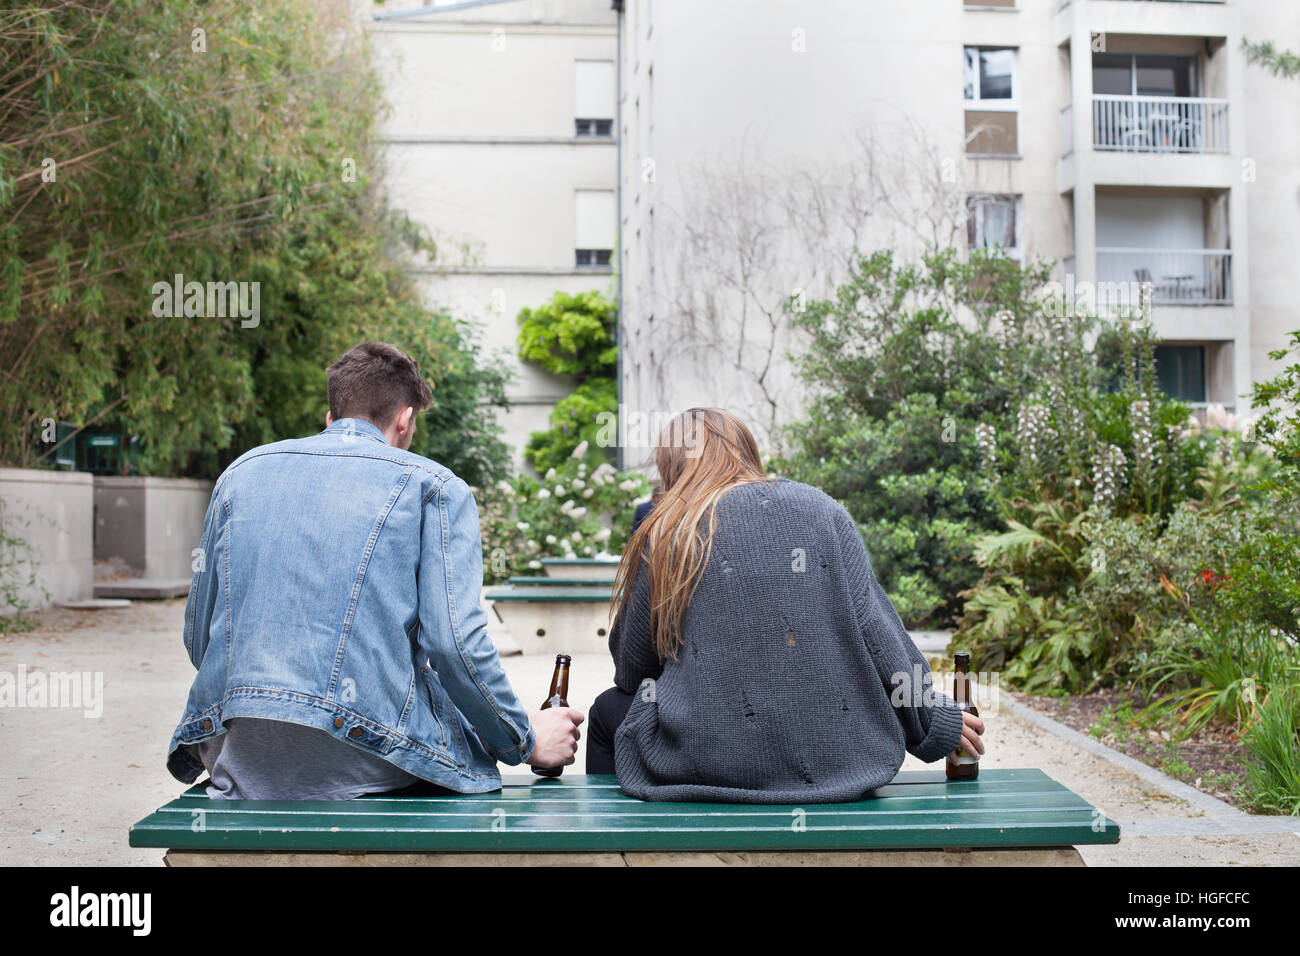 alcoholism, young people drinking beer on the bench - Stock Image